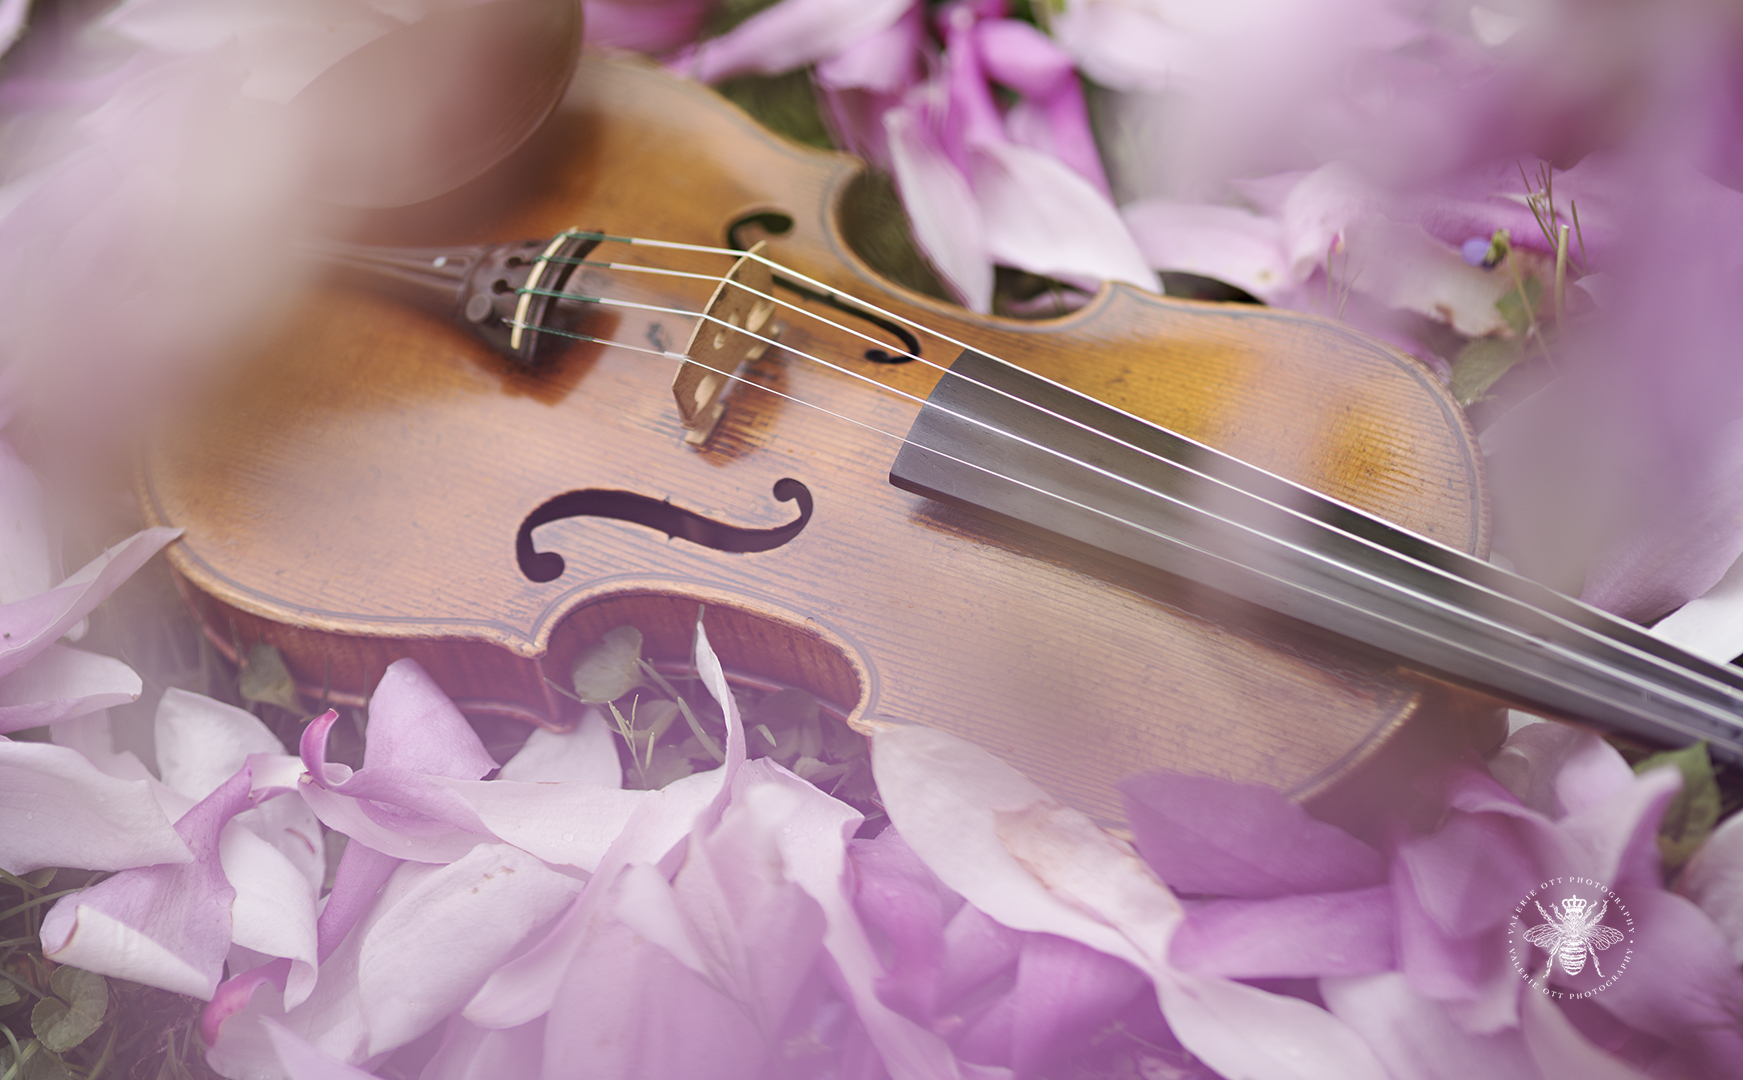 Album cover for Irish singer. A violin is surrounded by purple flowers.